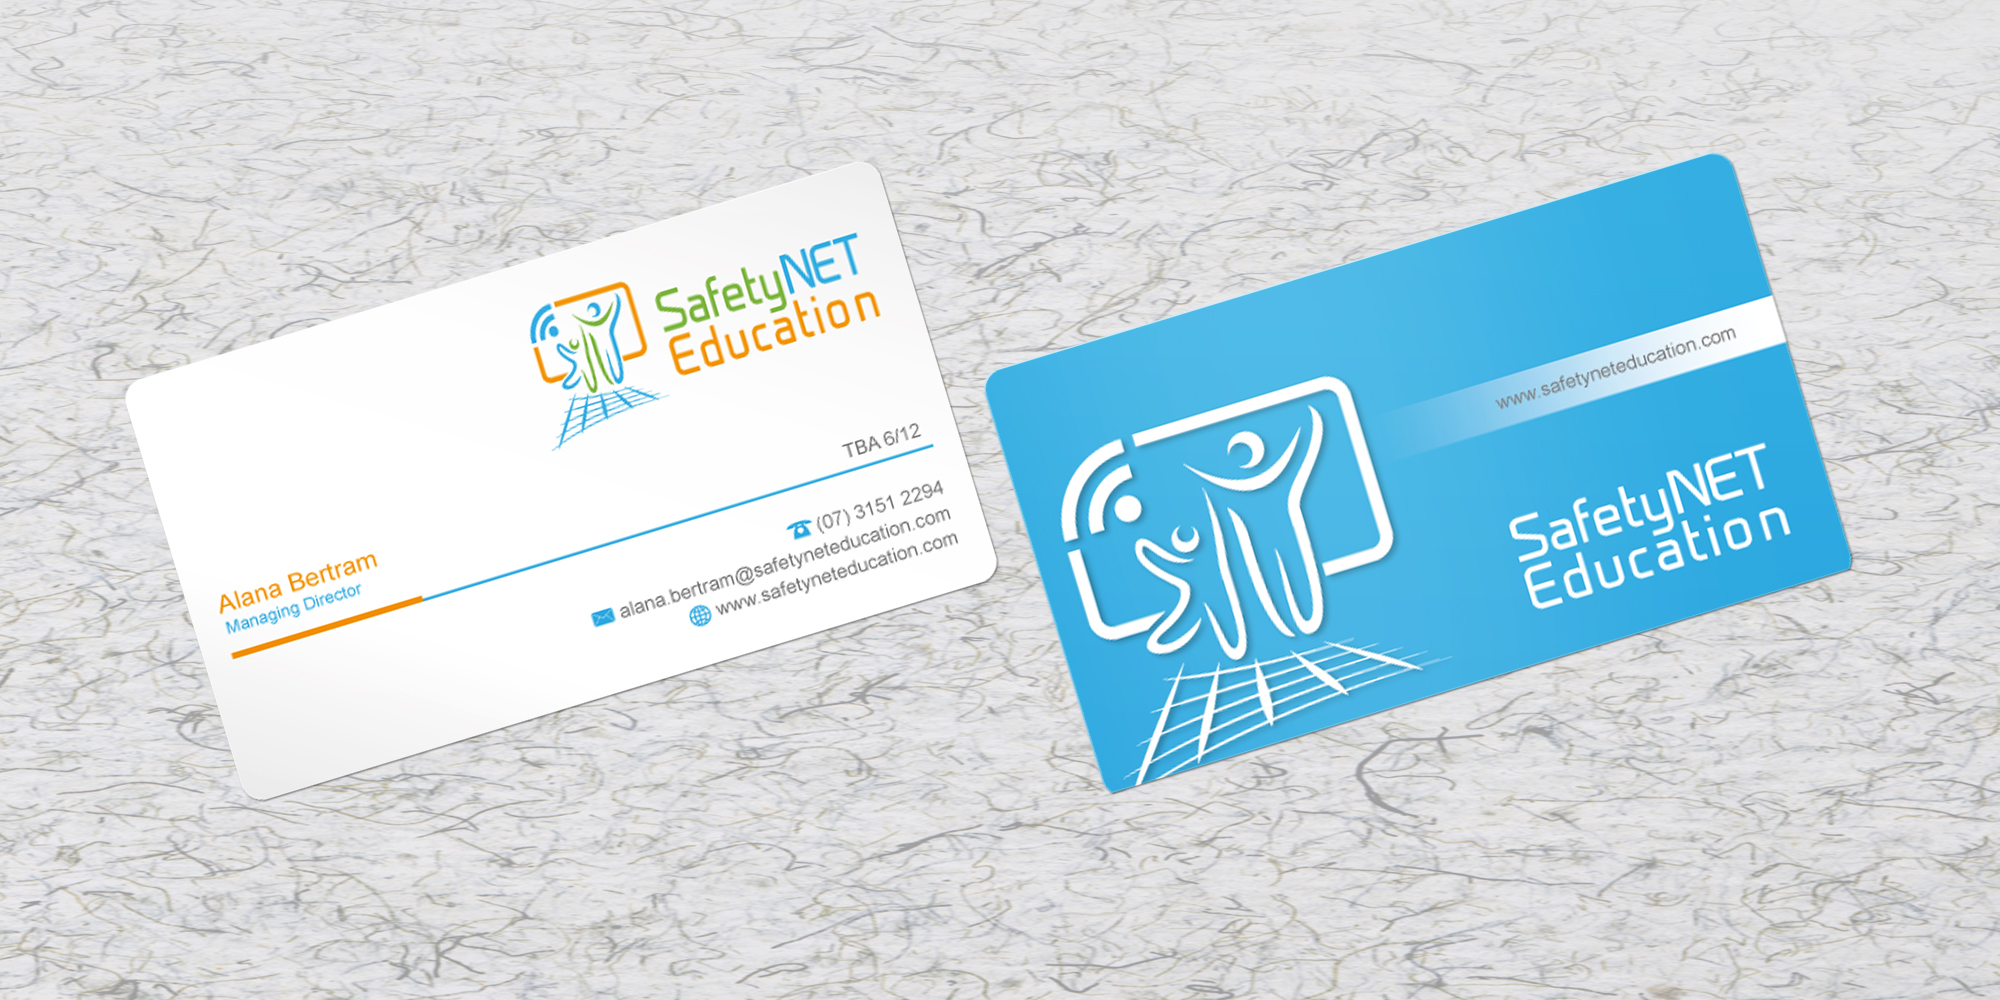 Business Cards and Stationary for Education Business with focus on social media - Education